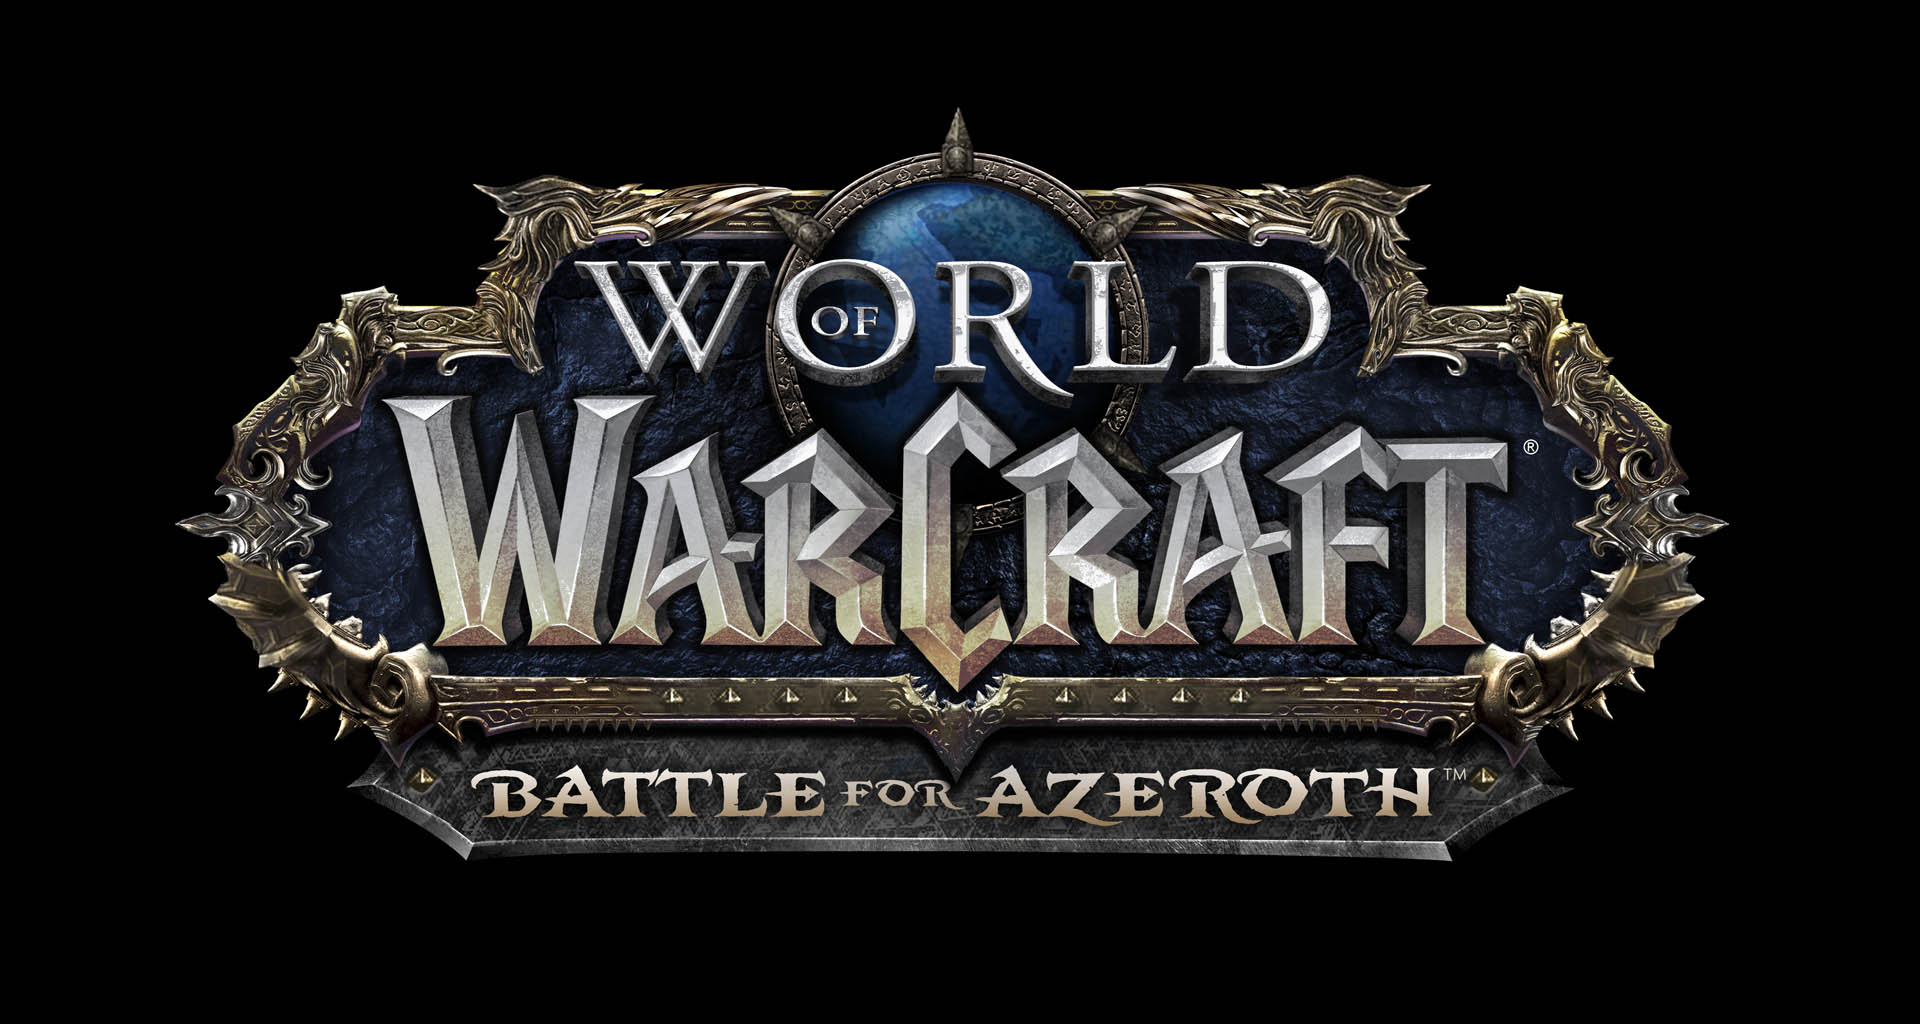 World Of Warcraft Battle For Azeroth Neuer Schlachtzug